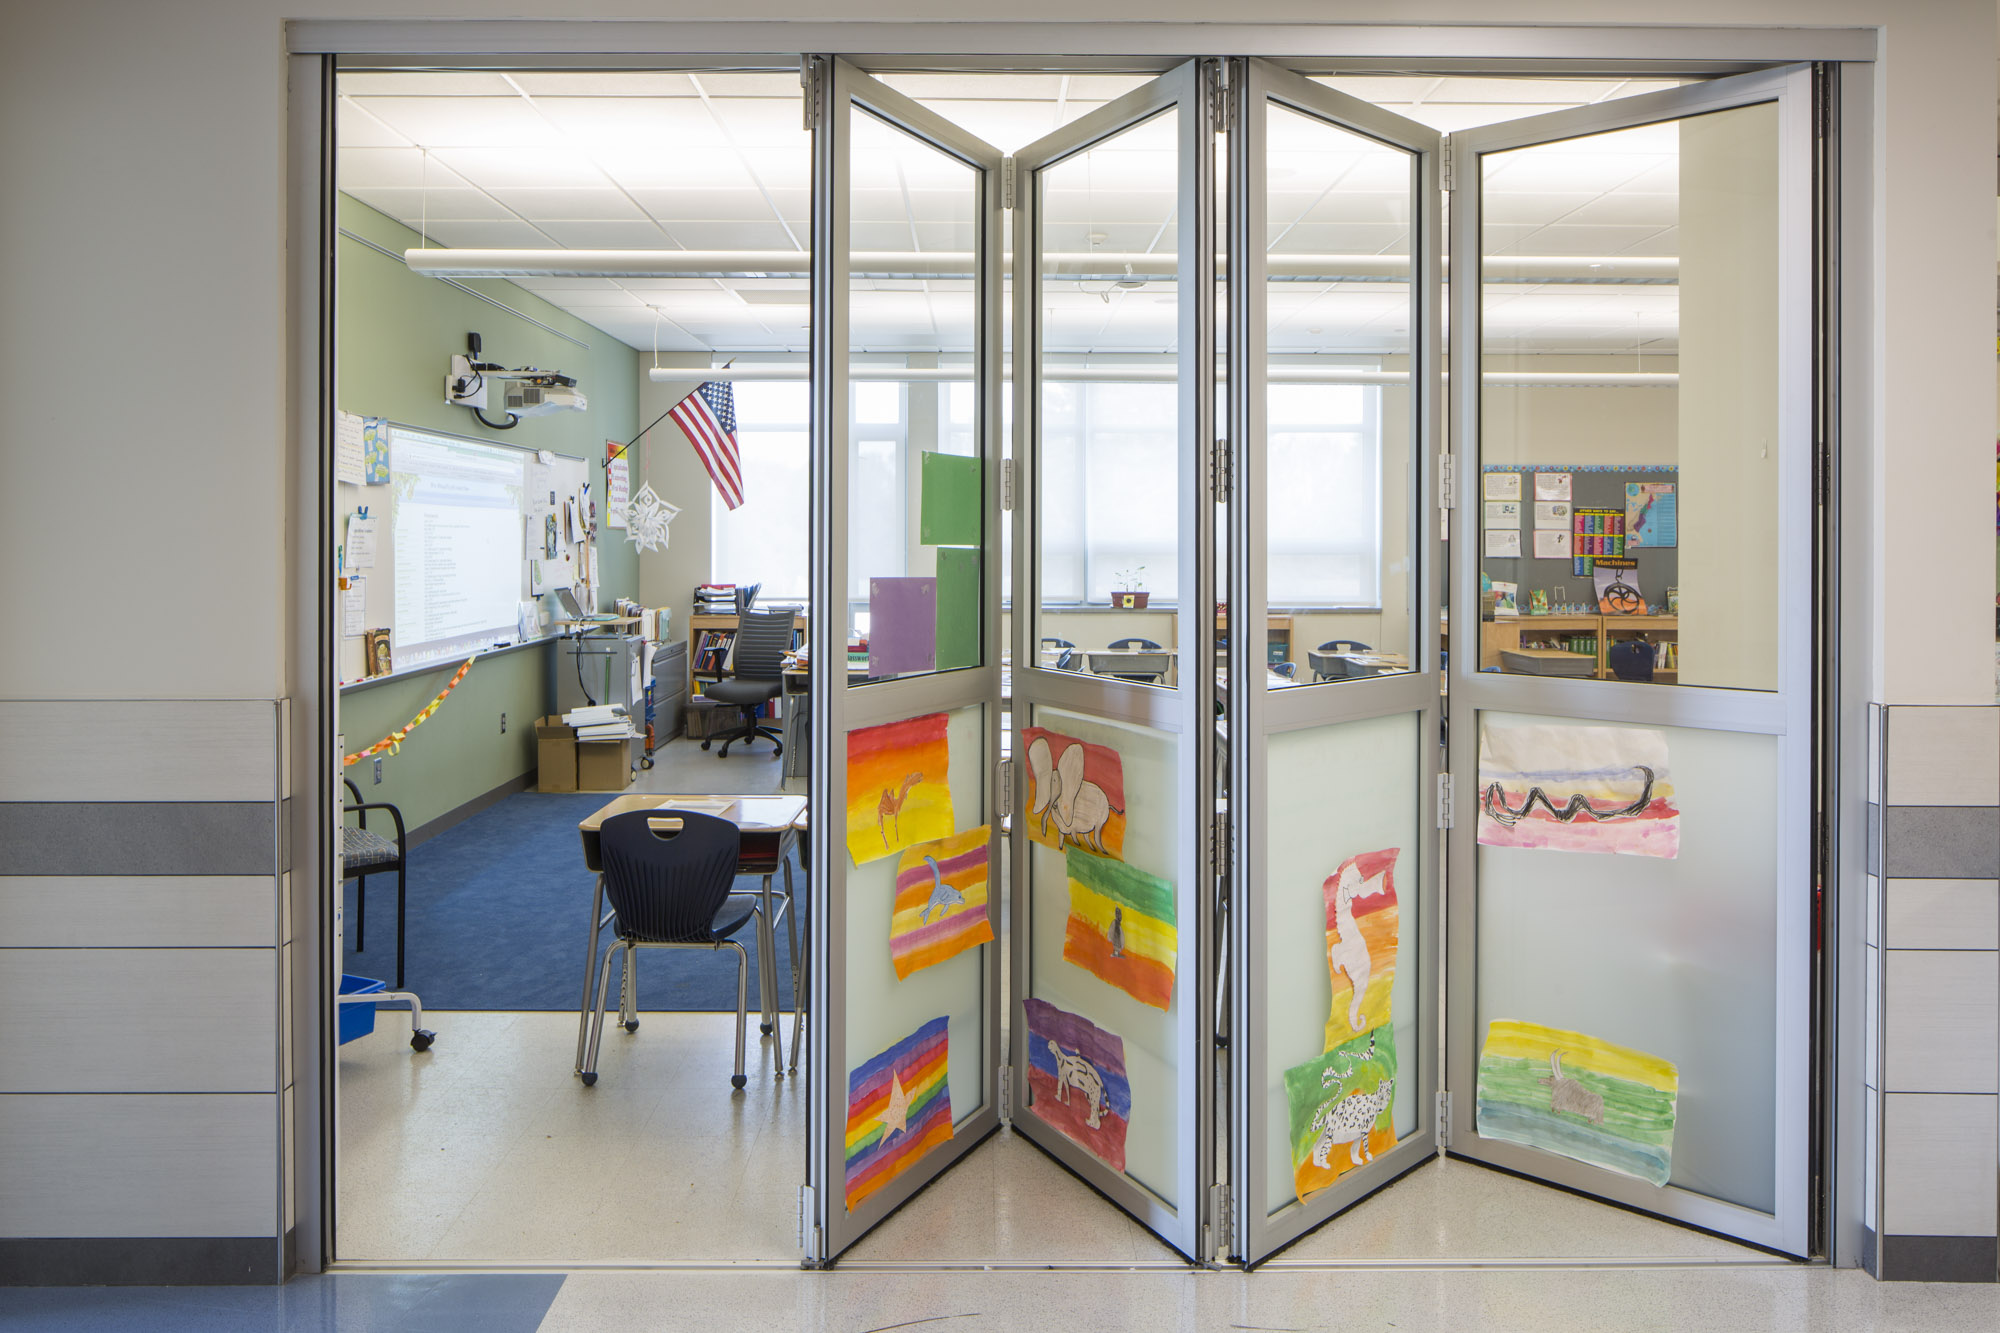 SMMA Classroom Design for Bancroft Elementary